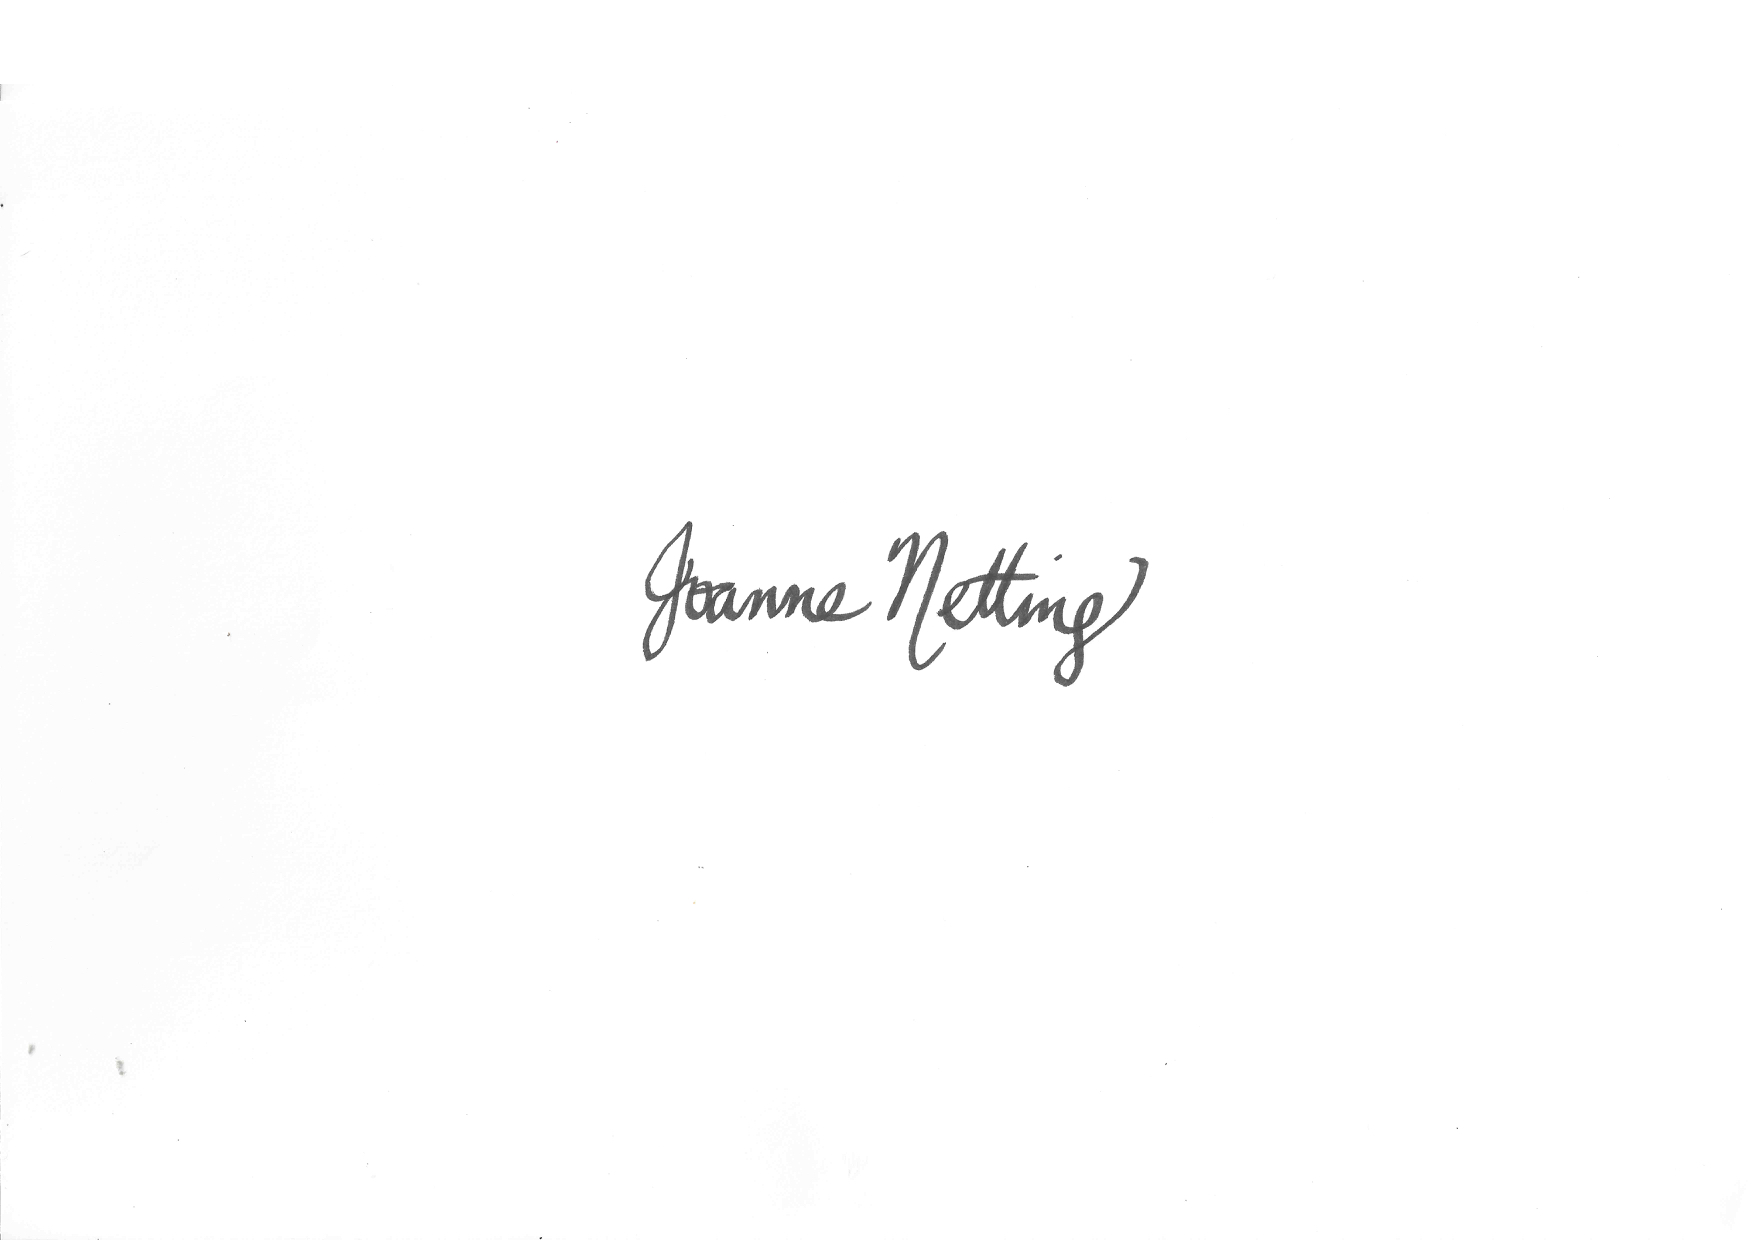 Joanne Netting's Signature